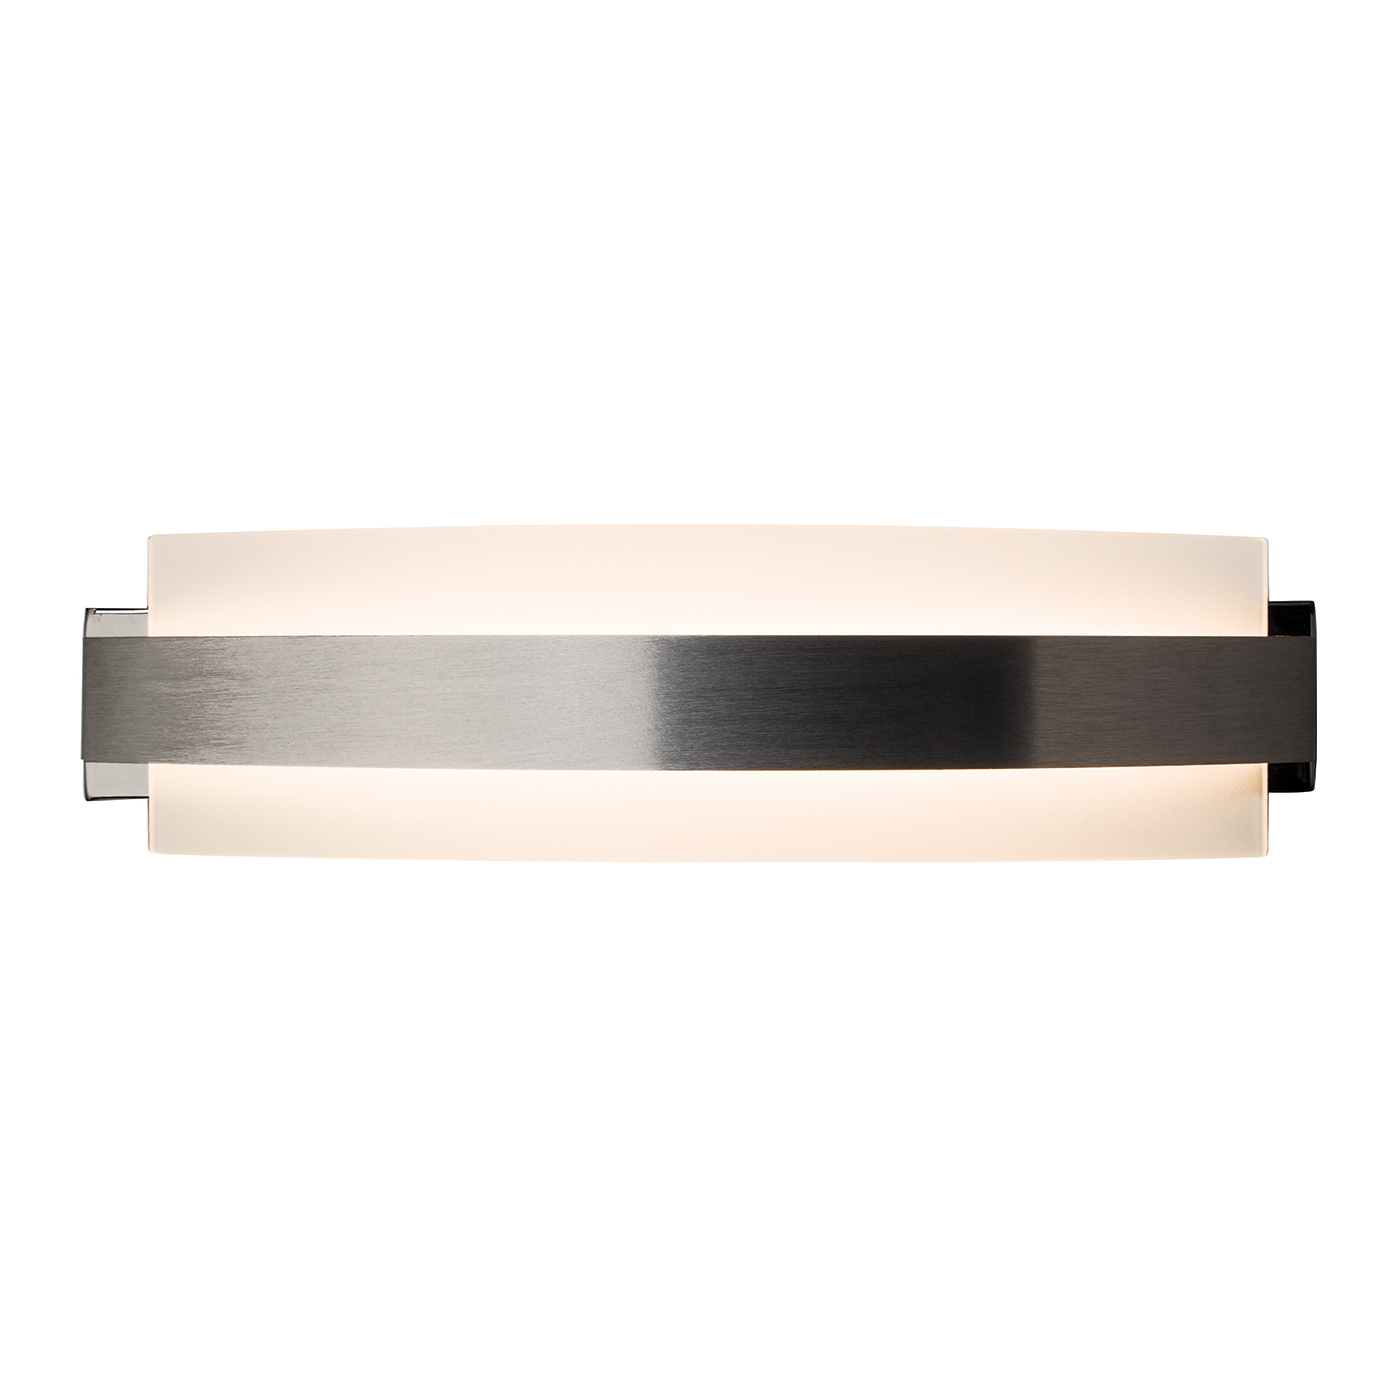 Endon Matson 1lt 350mm wall light 7W Brushed aluminium & frosted glass